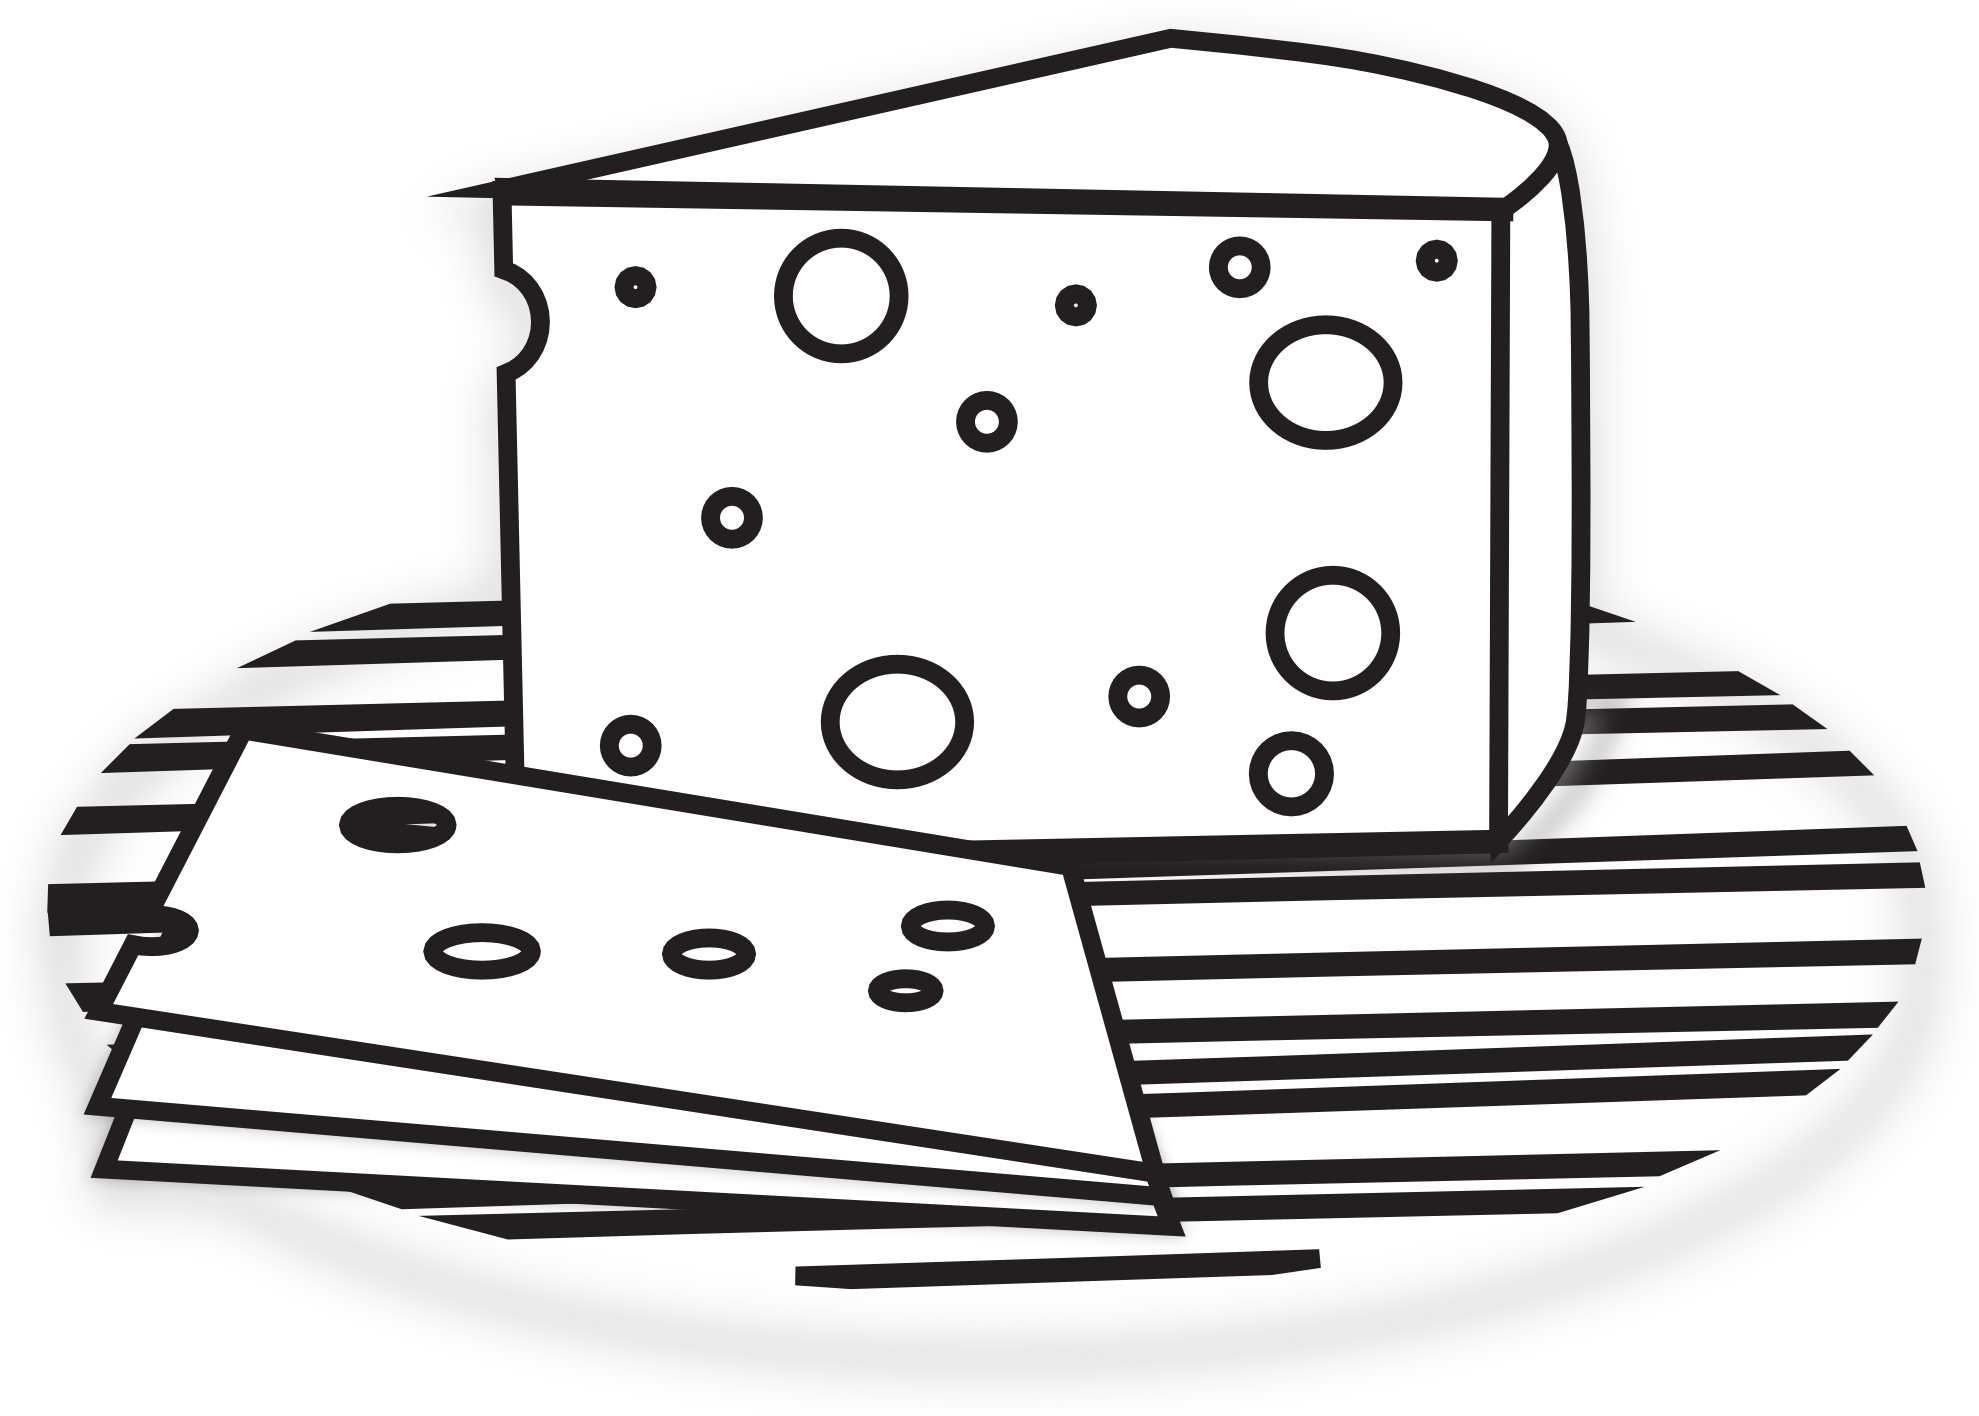 Yearbook clipart cheese. Black and white clipground